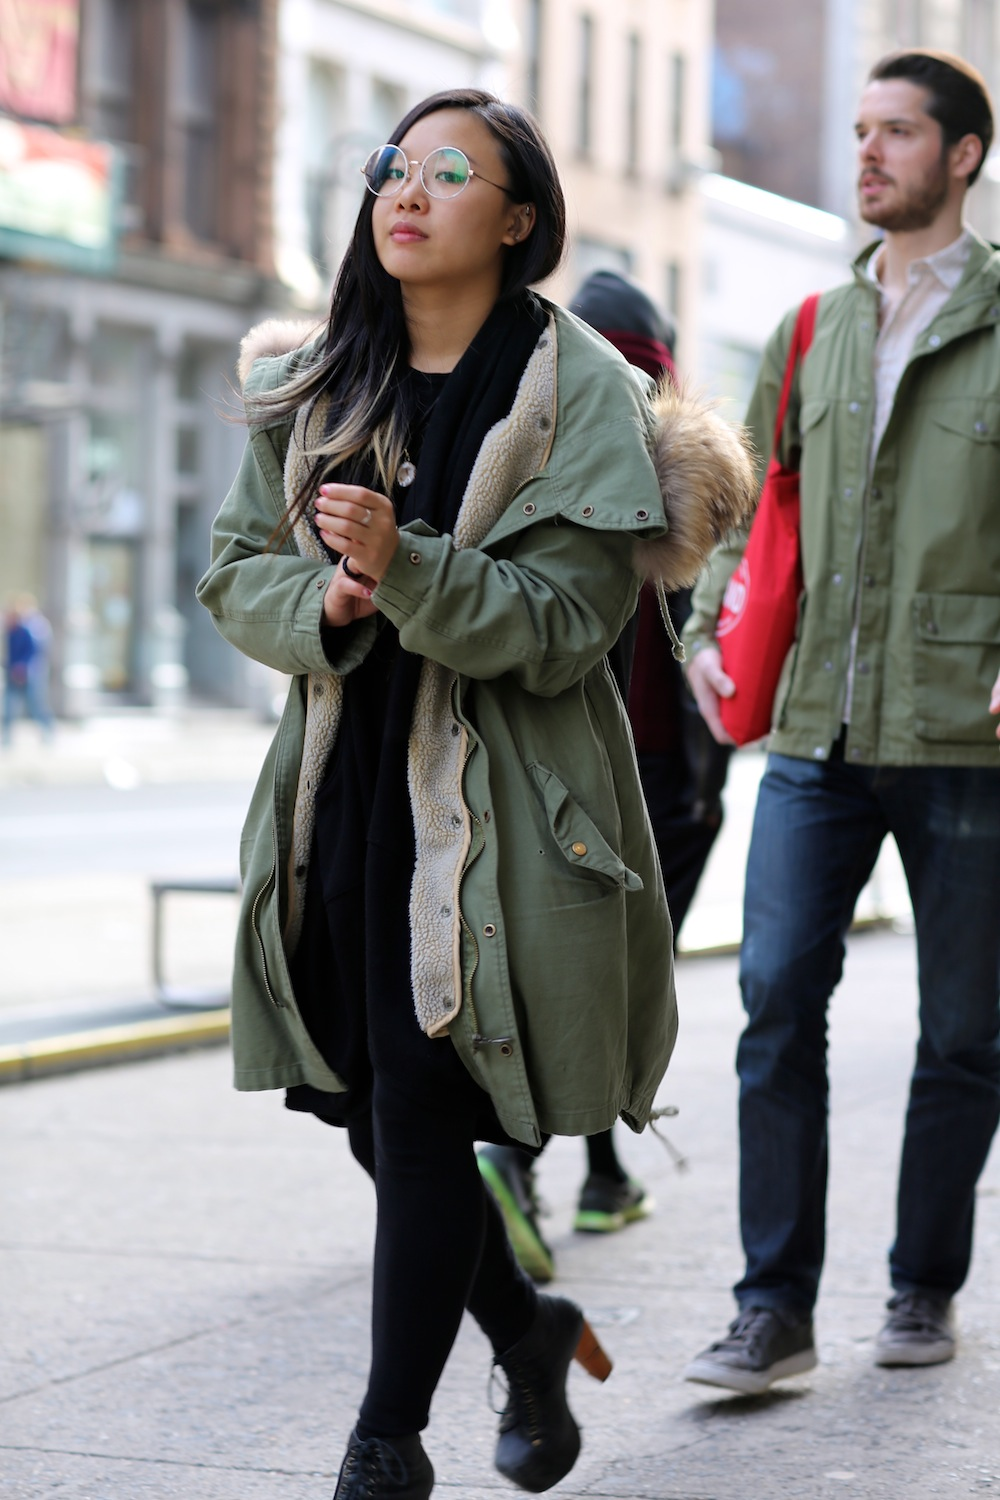 Street Style Fashion Outerwear And Hats Fashables